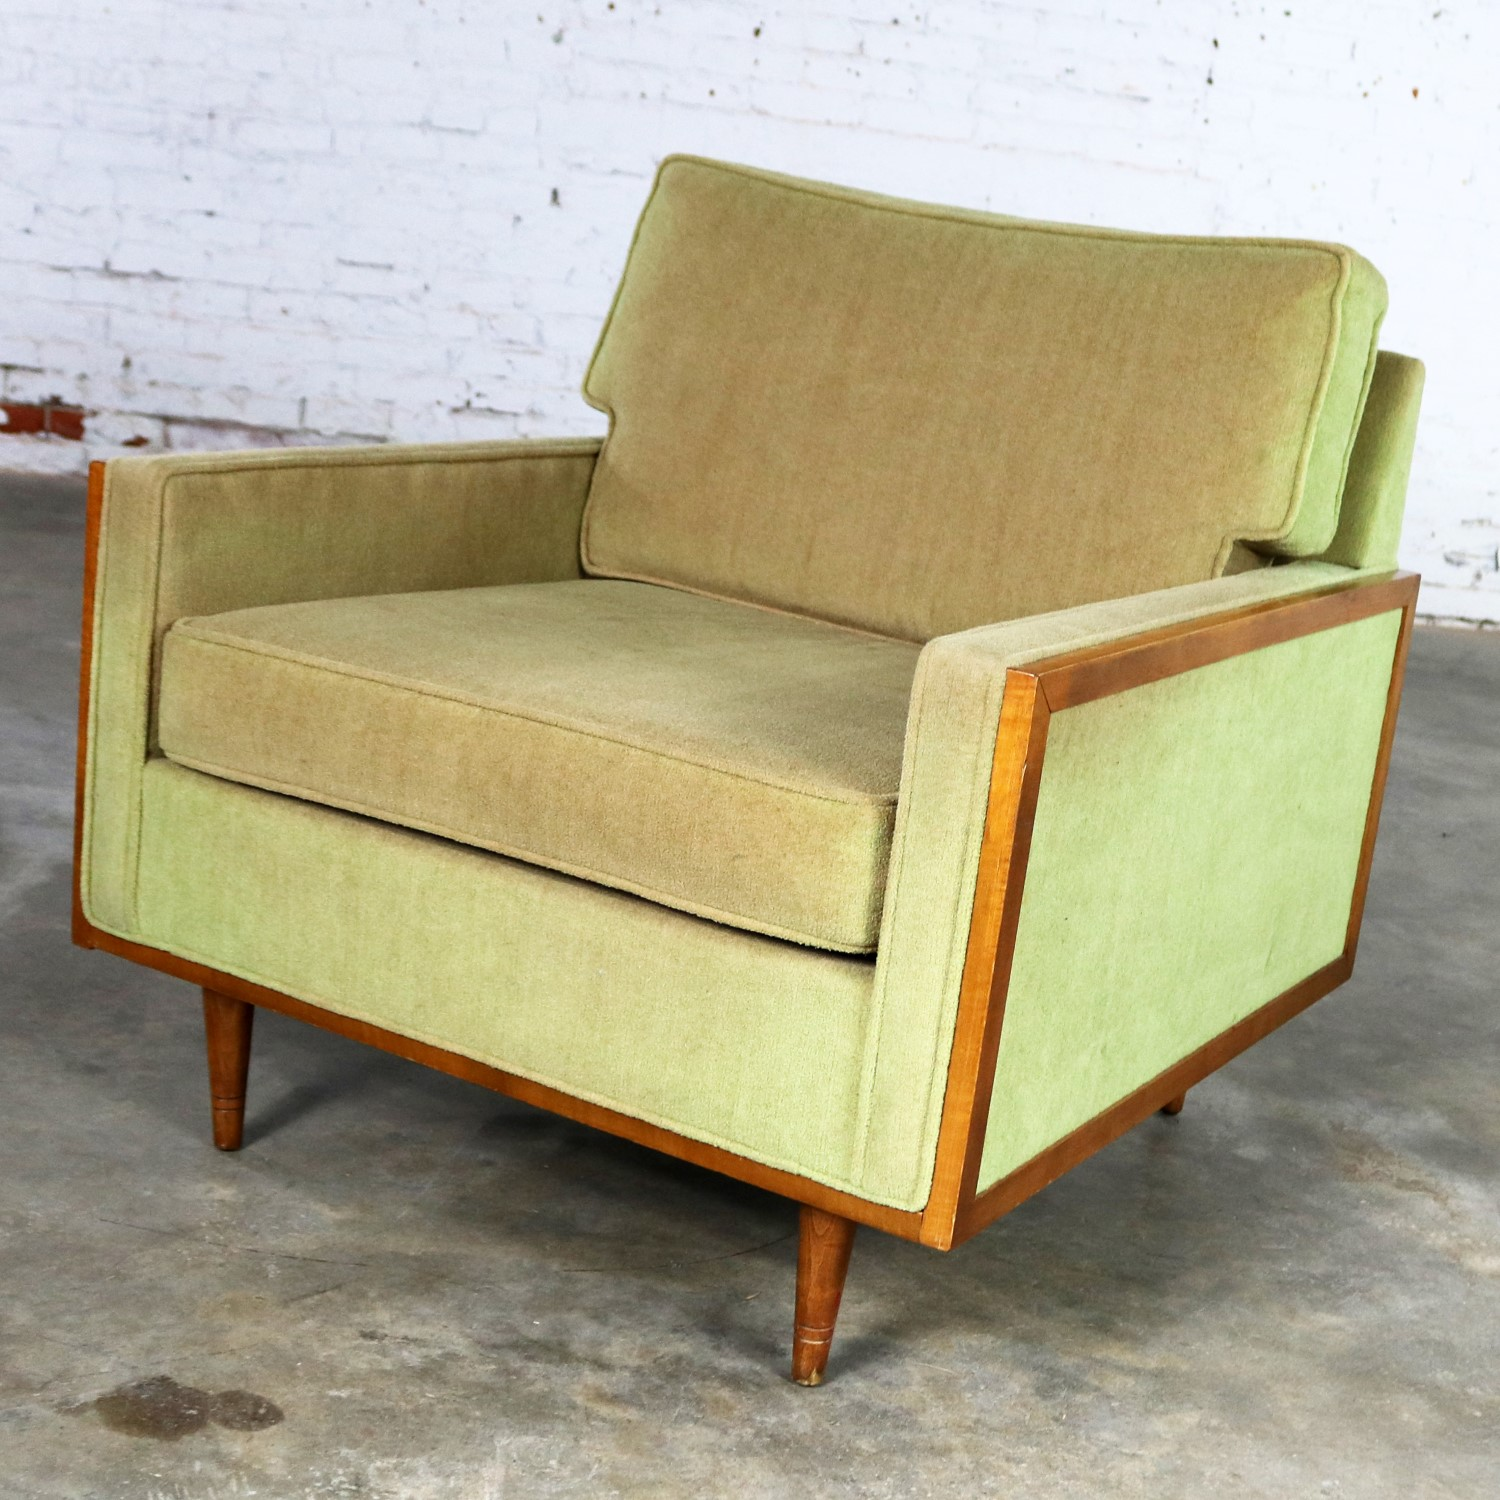 Pleasant Mid Century Modern Cube Lounge Club Chair Style Of Milo Machost Co Dining Chair Design Ideas Machostcouk